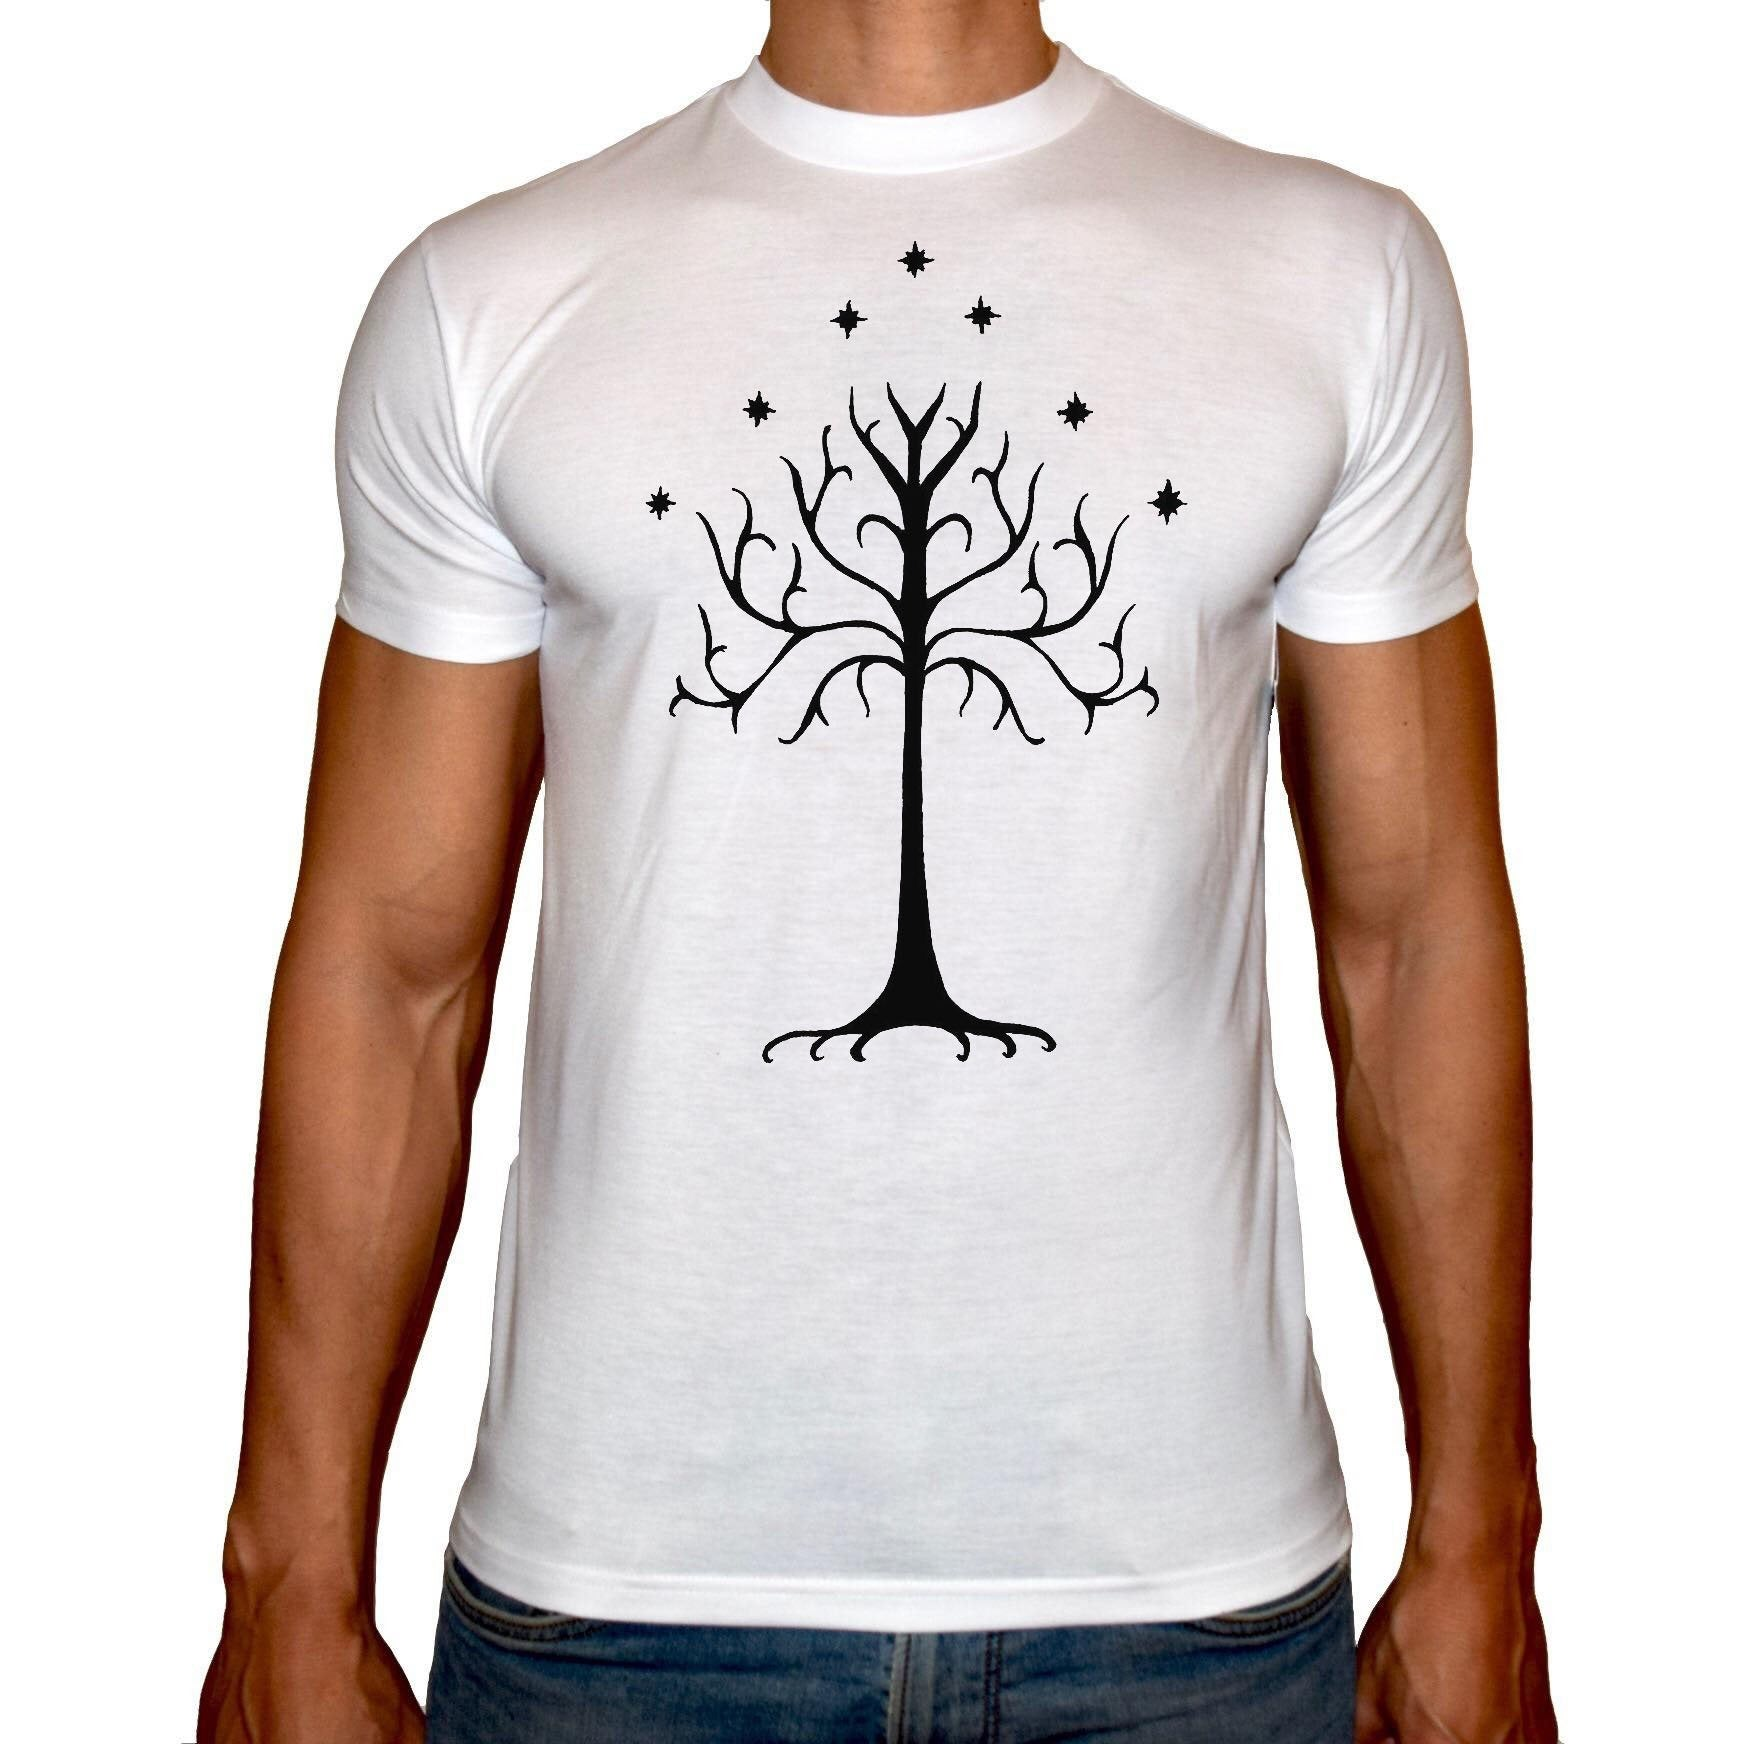 Phoenix WHITE Round Neck Printed T-Shirt Men (Lord of the rings)